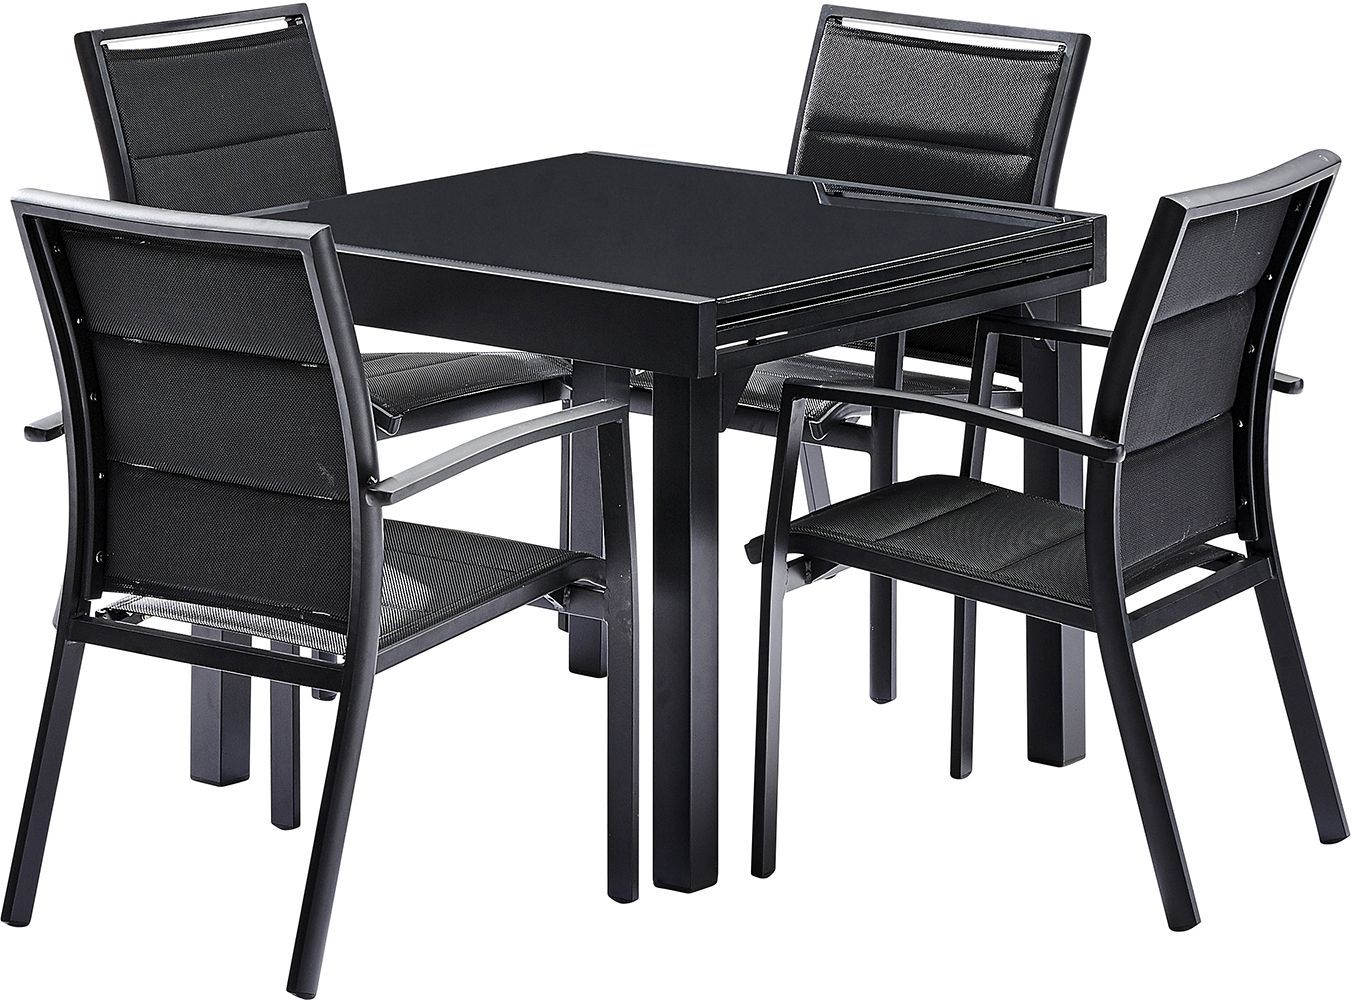 Salon de jardin moderne 4 personnes modulo noir for Table 30 personnes